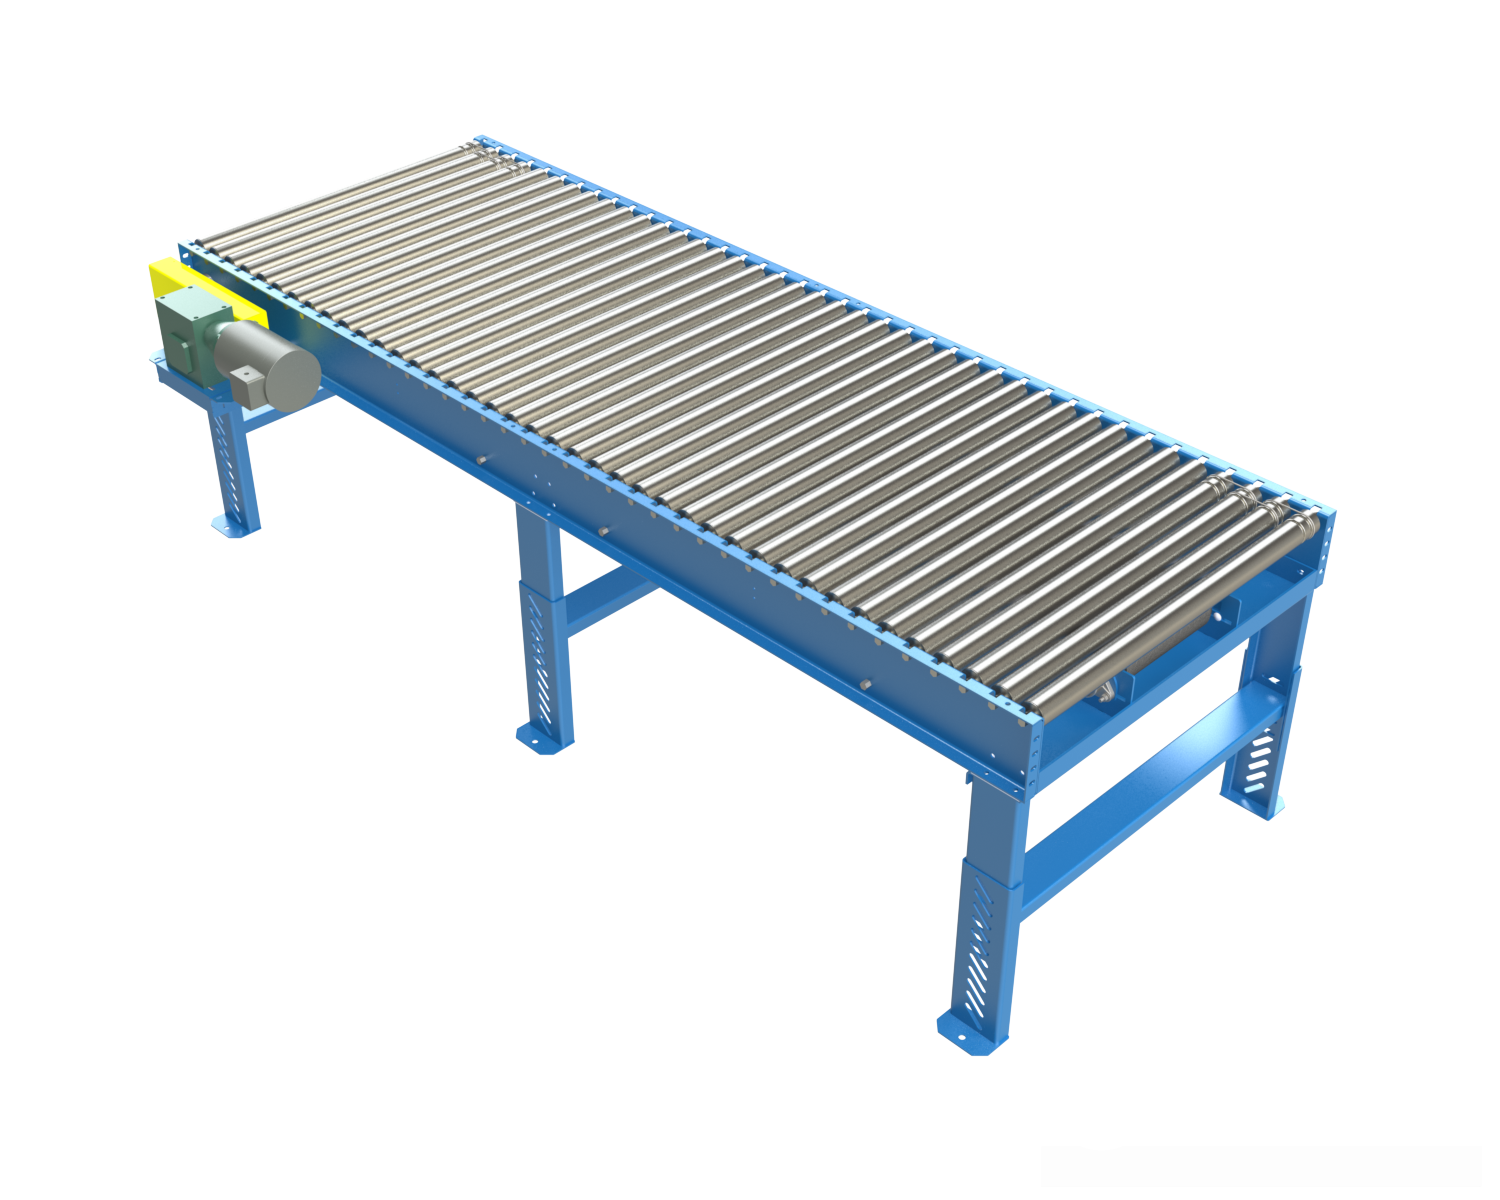 Model BDLR25 is a heavy duty, minimum pressure accumulation conveyor which provides an effective means of accumulating heavier products with minimal back pressure. This conveyor can be effective for loads that require higher capacity rollers on closer centers.